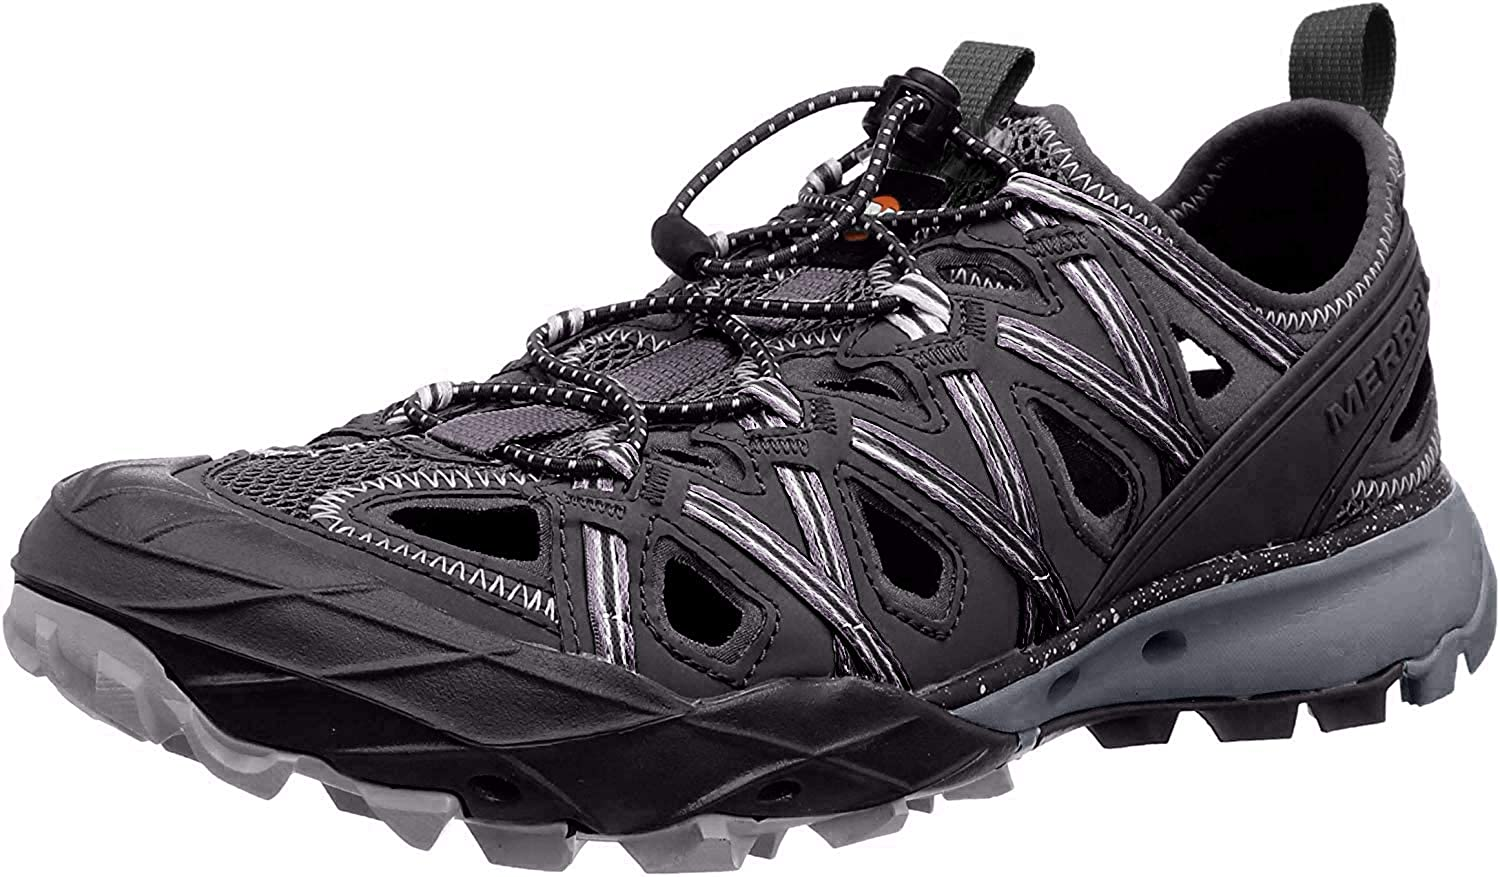 Merrell Women's Water Shoes Brand Cheap Sale Venue Max 74% OFF